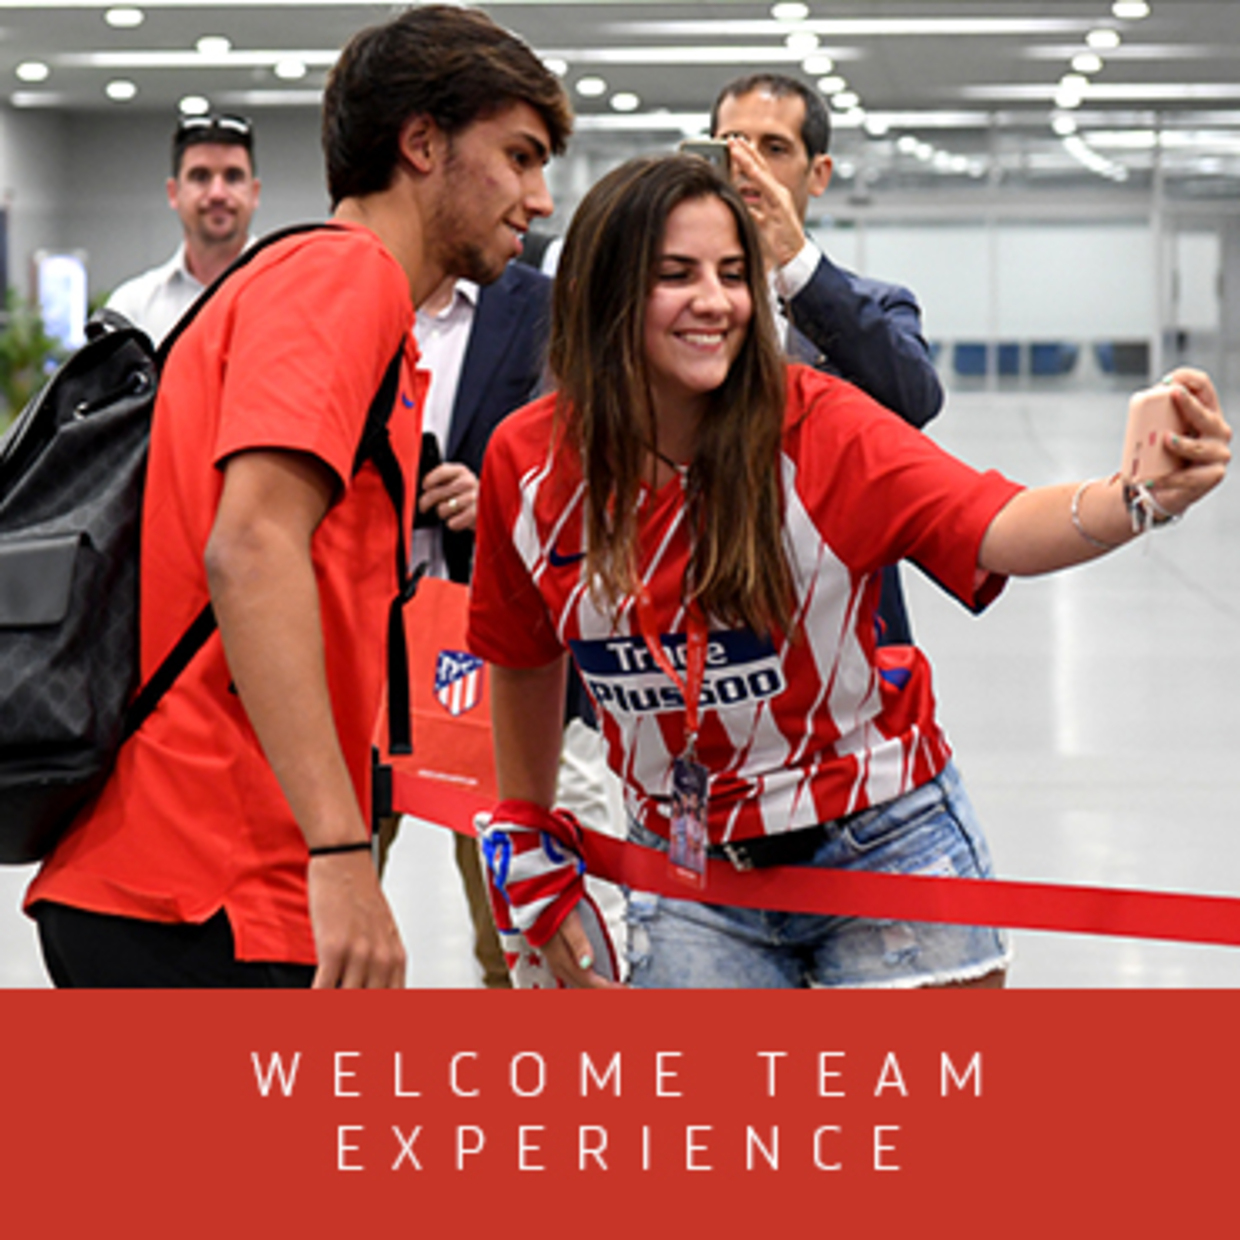 WELCOME TEAM EXPERIENCE